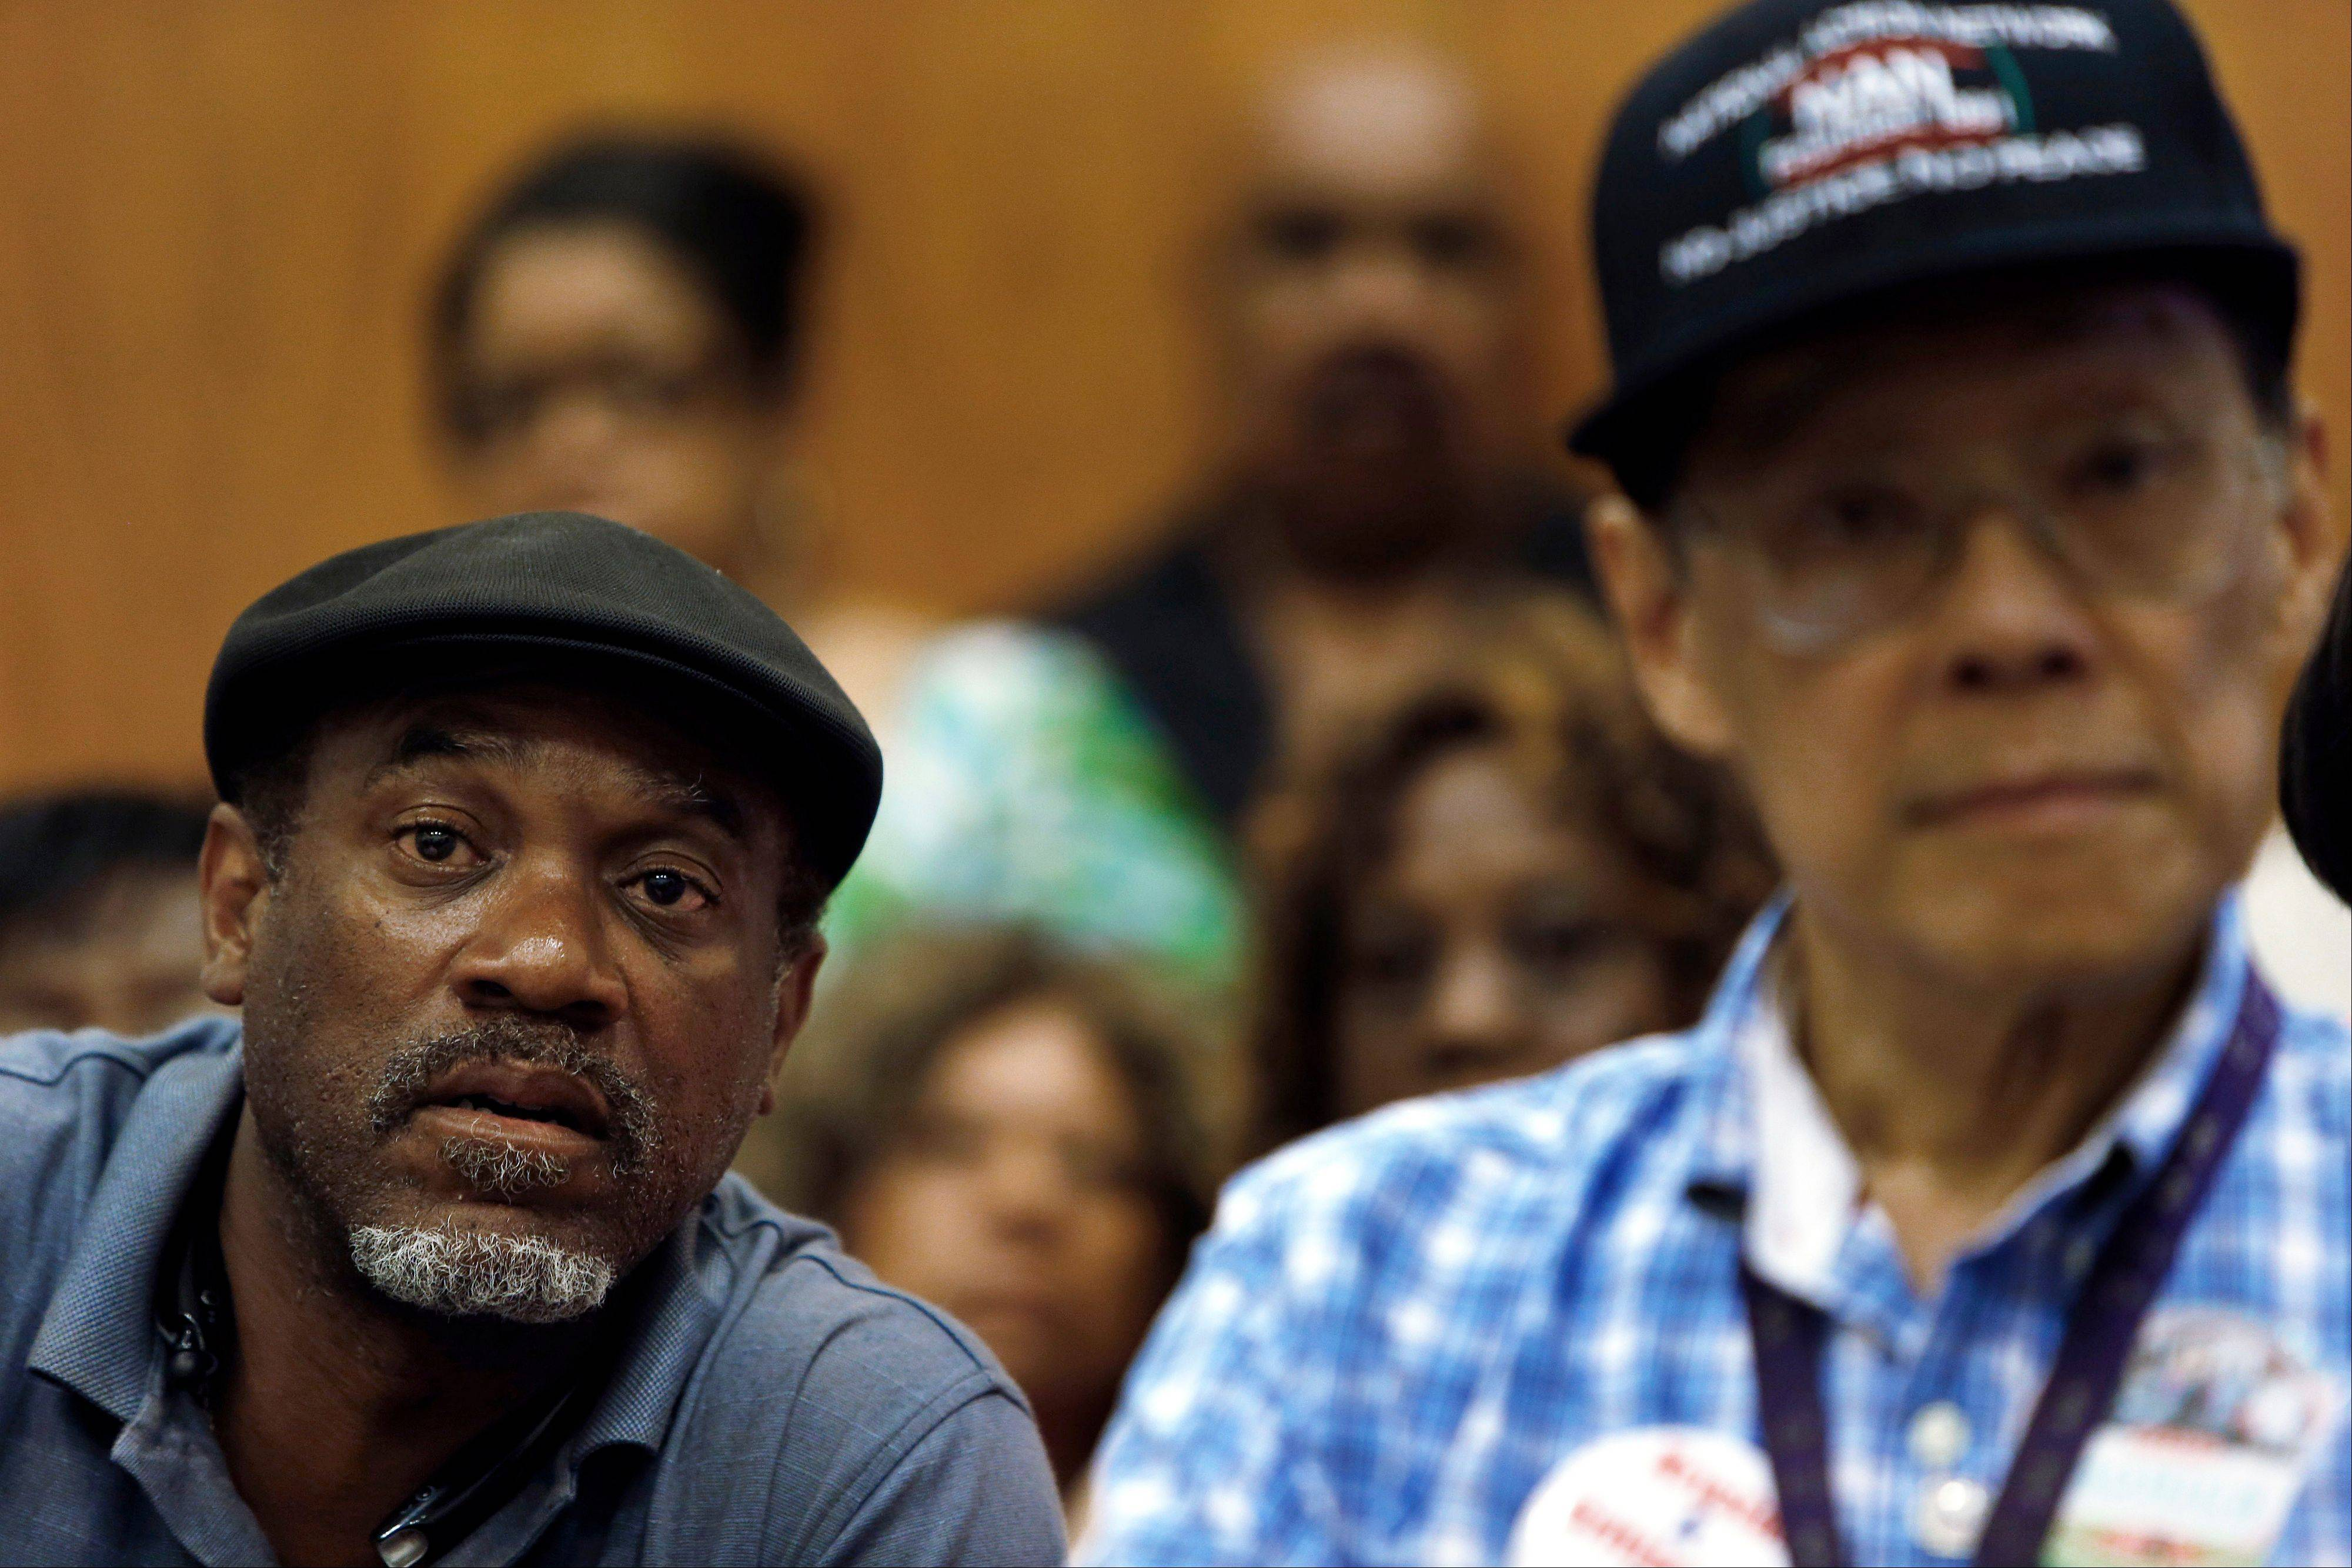 Tony Brown, left, a Department of Transportation retiree, listens to union leaders talk about what Detroit�s bankruptcy filing means to thousands of retirees during a meeting in Detroit. Monday is the deadline for a host of banks, bond insurers, two employee pension systems and others standing to lose big if a federal judge declares Detroit insolvent to legally file their objections to the largest municipal bankruptcy in U.S. history.